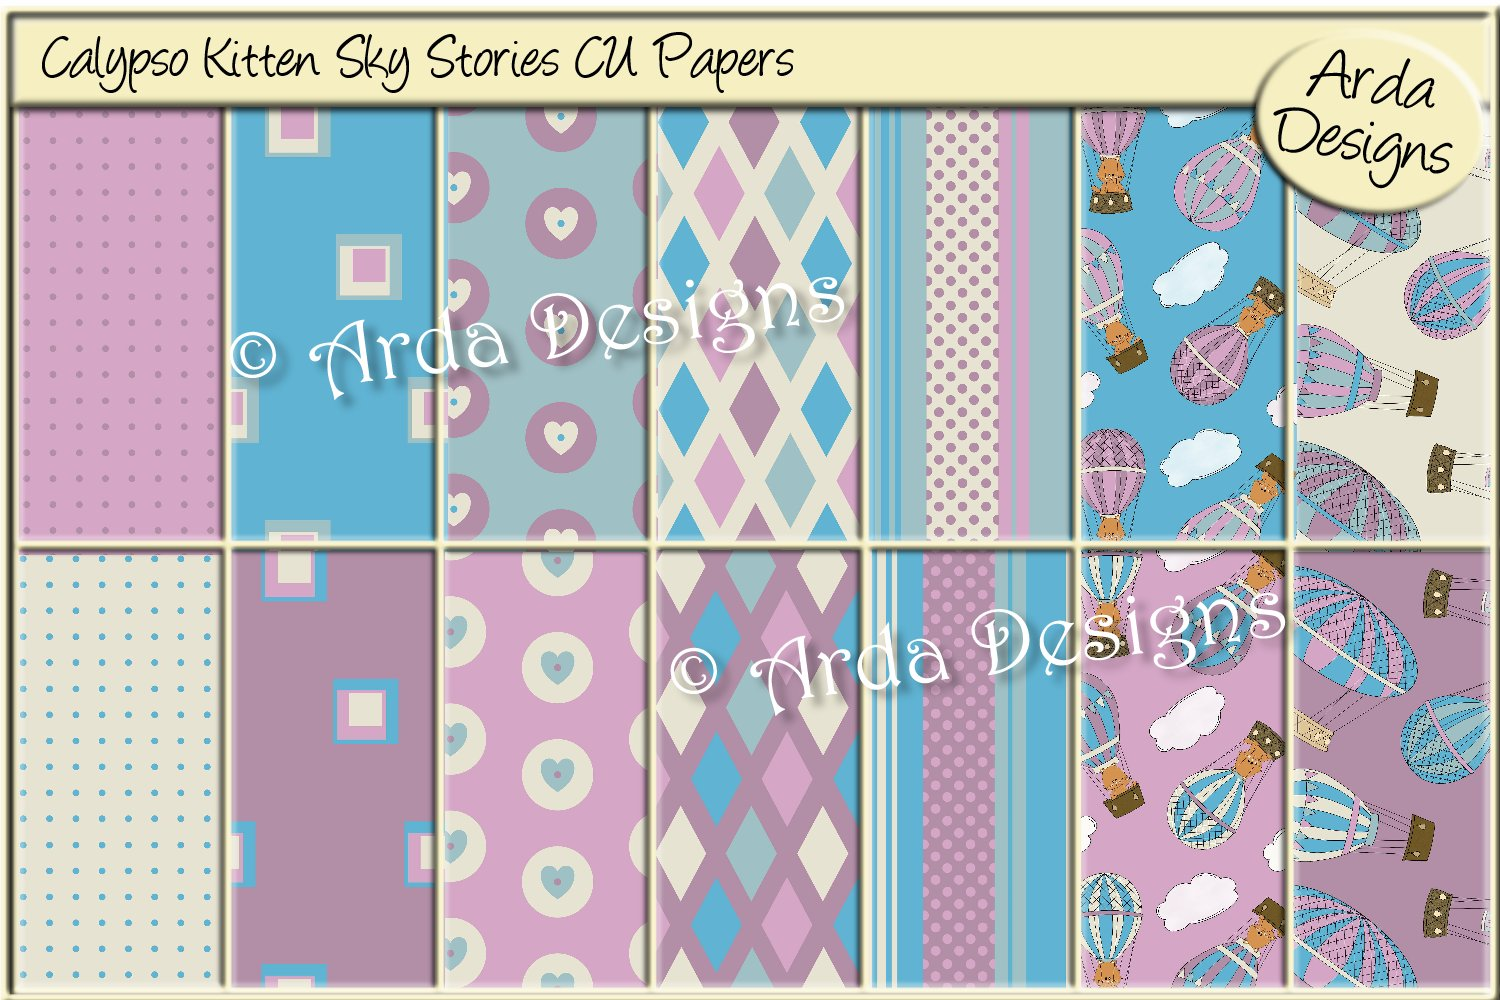 Download Free Calypso Kitten Sky Stories Cu Papers Graphic By Arda Designs for Cricut Explore, Silhouette and other cutting machines.